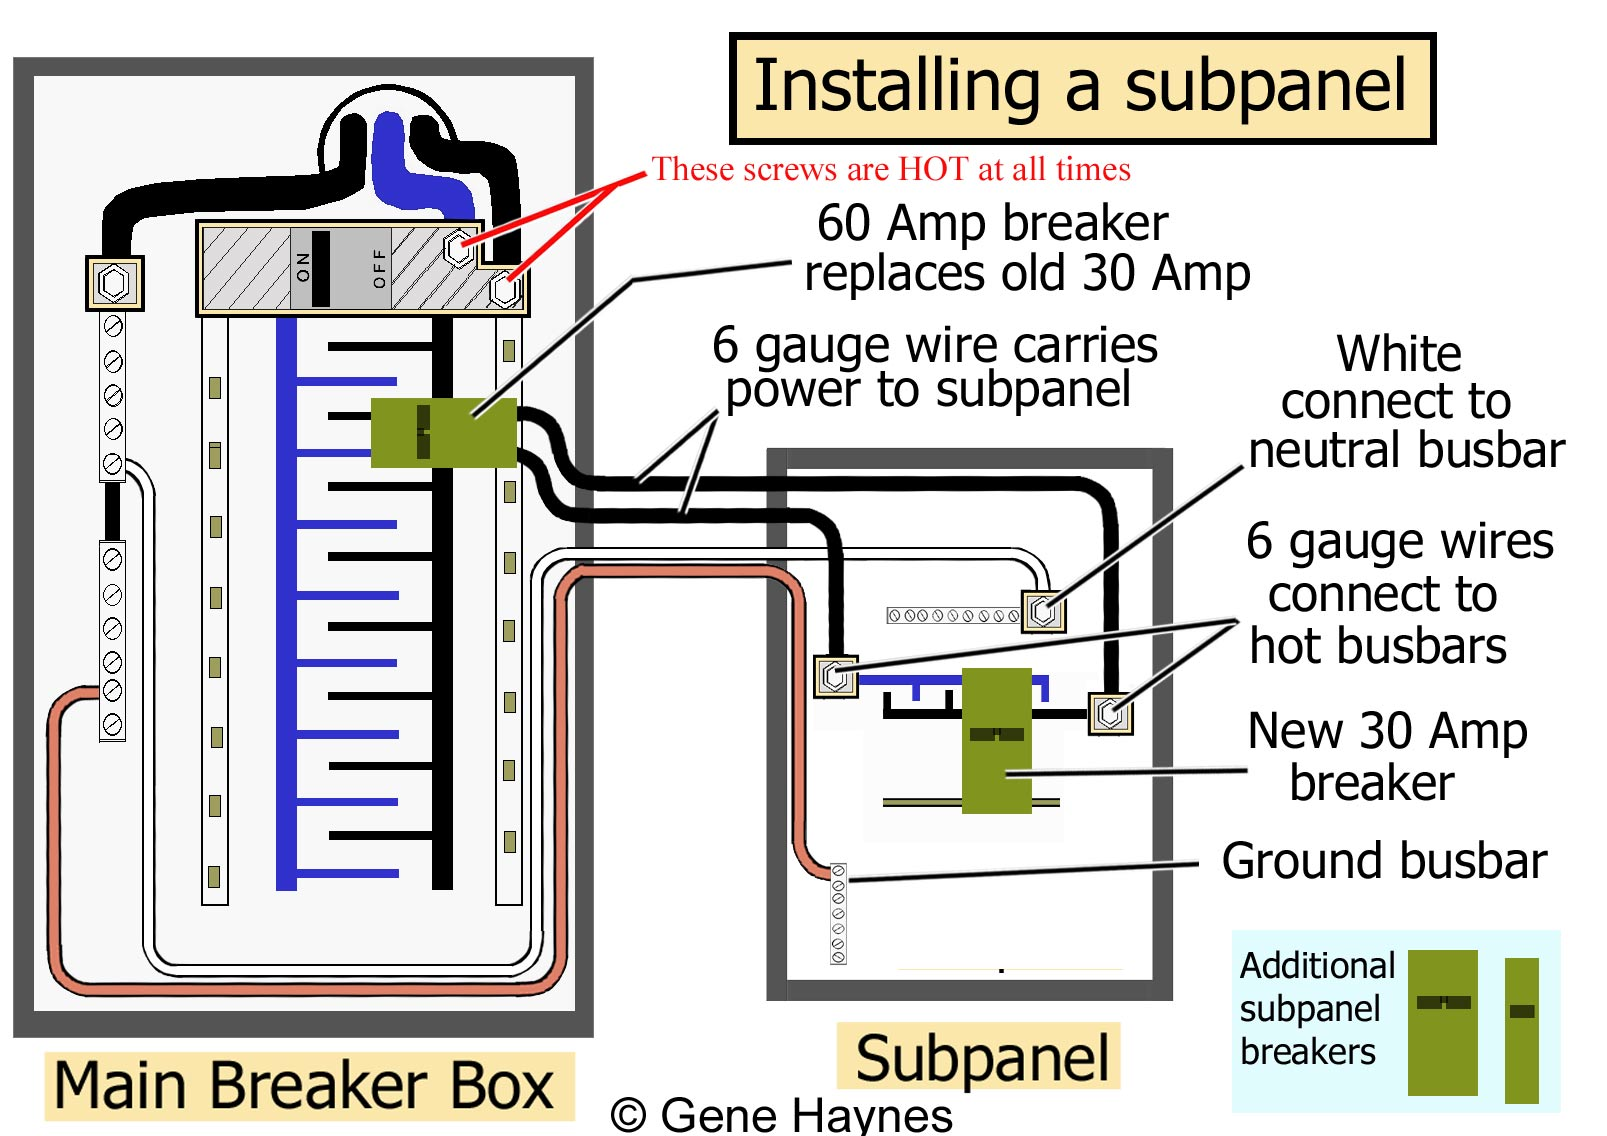 How to install a subpanel how to install main lug see larger 60 amp subpanel with 240volt and 120volt use with both 240volt and 120volt breakers 1 60 150 amp breaker replaces any 240 breaker in main box keyboard keysfo Image collections